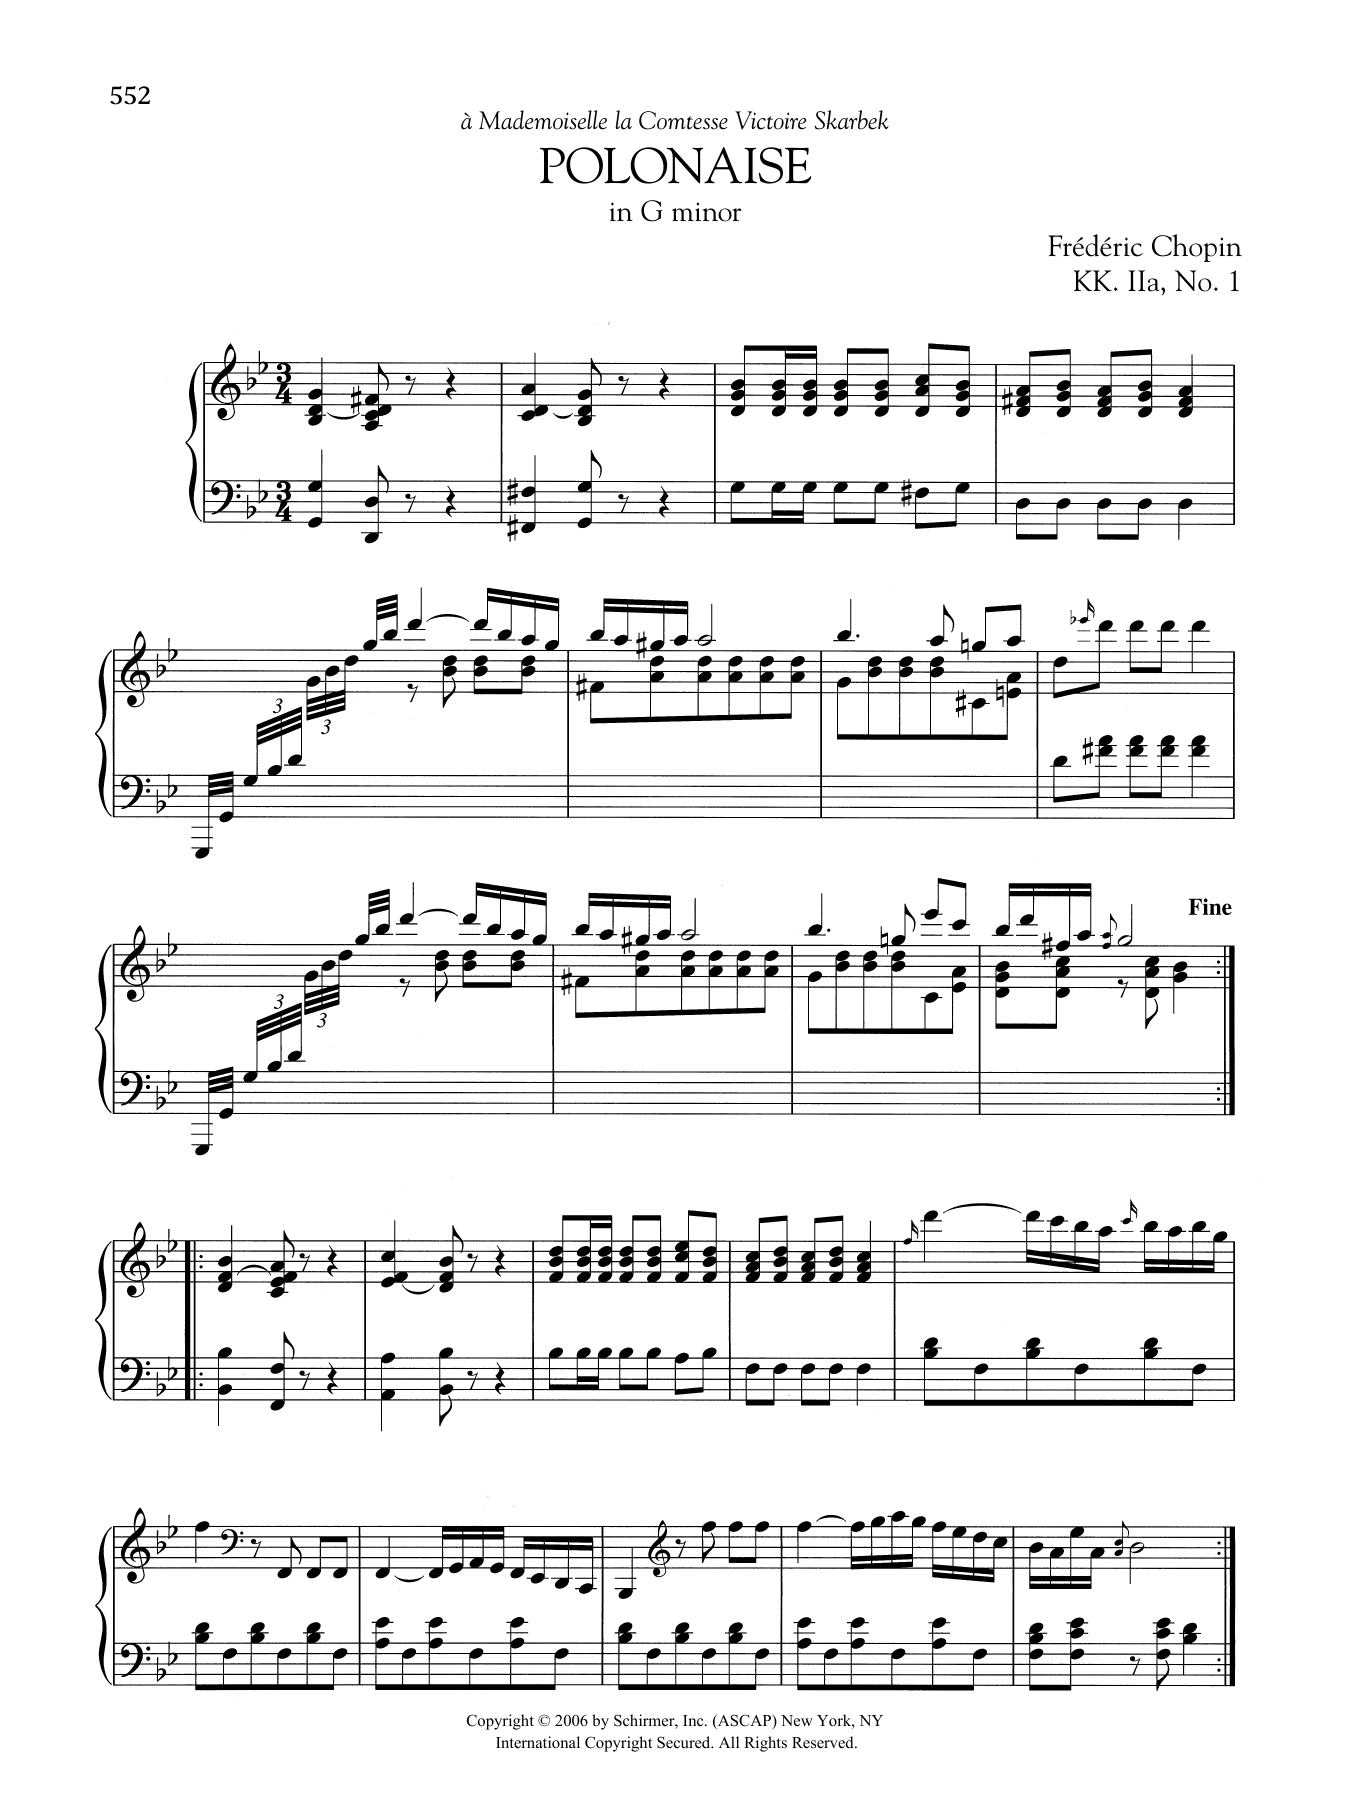 Polonaise in G minor, KK. IIa, No. 1